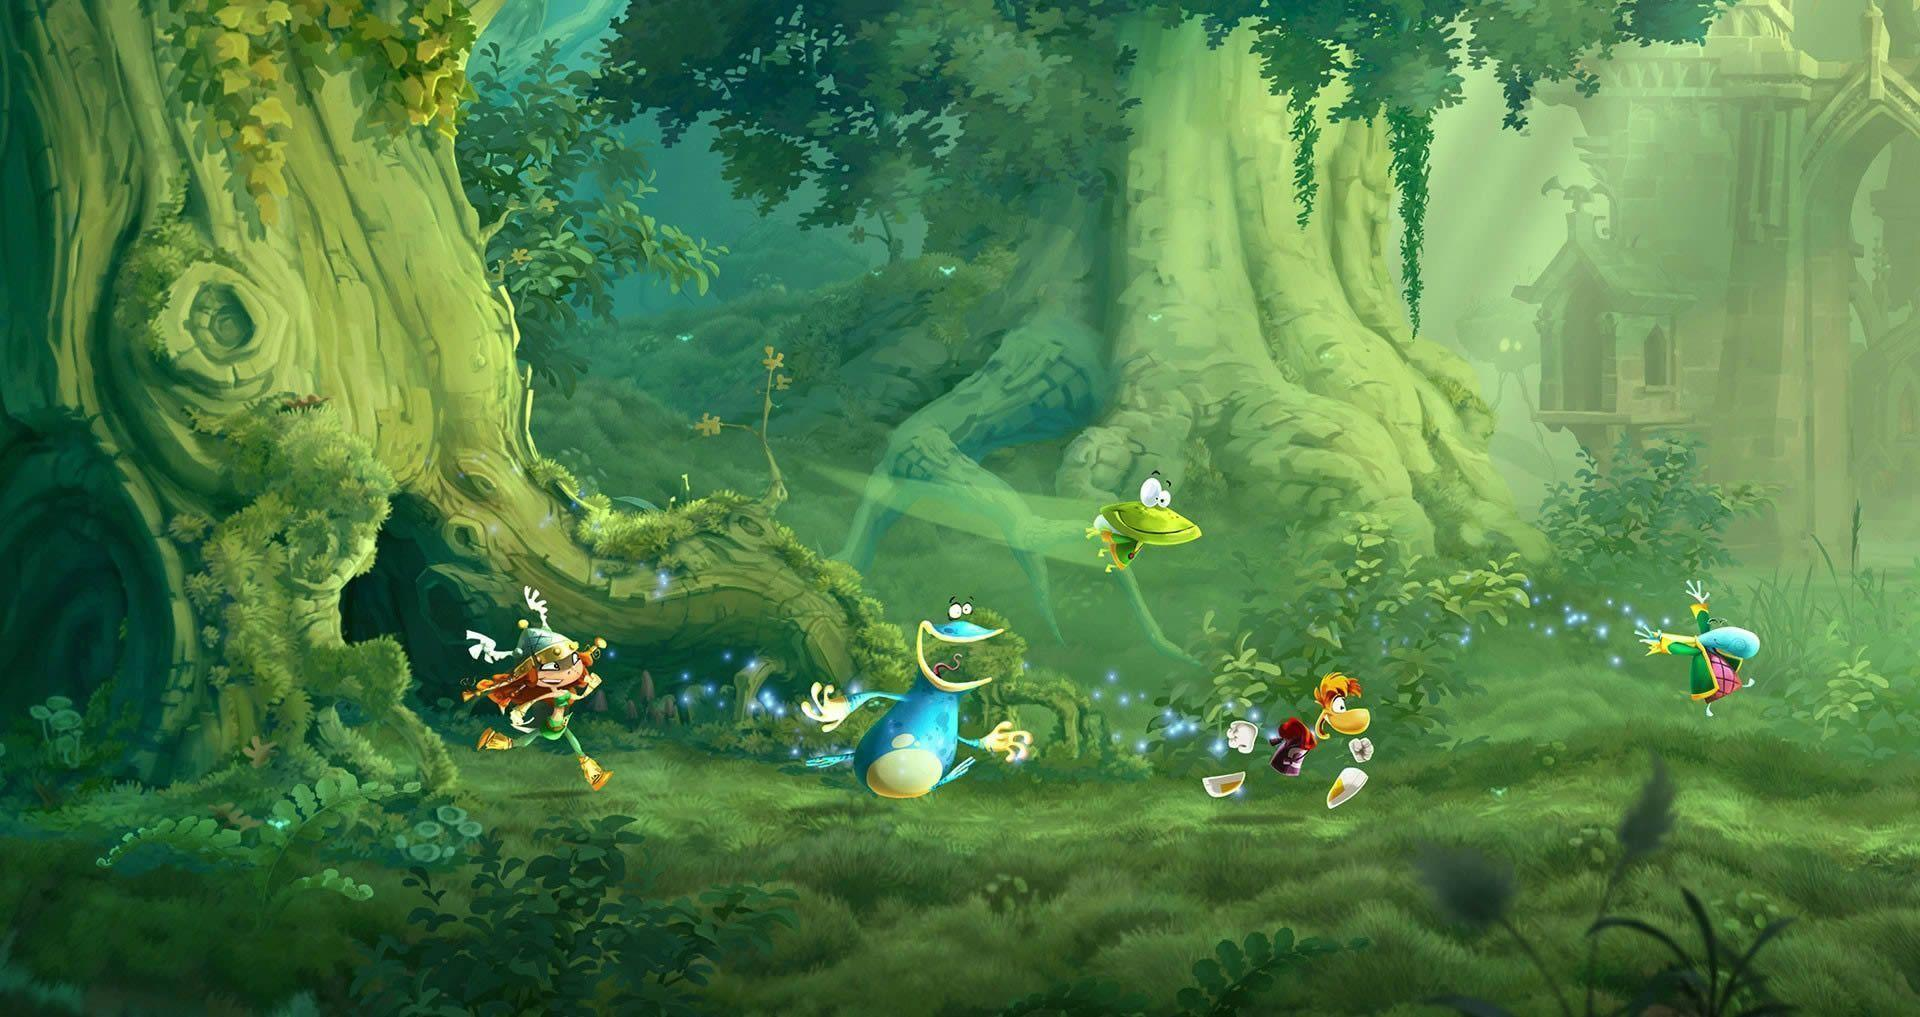 New Rayman Legends screenshots hint at 1080p game resolution